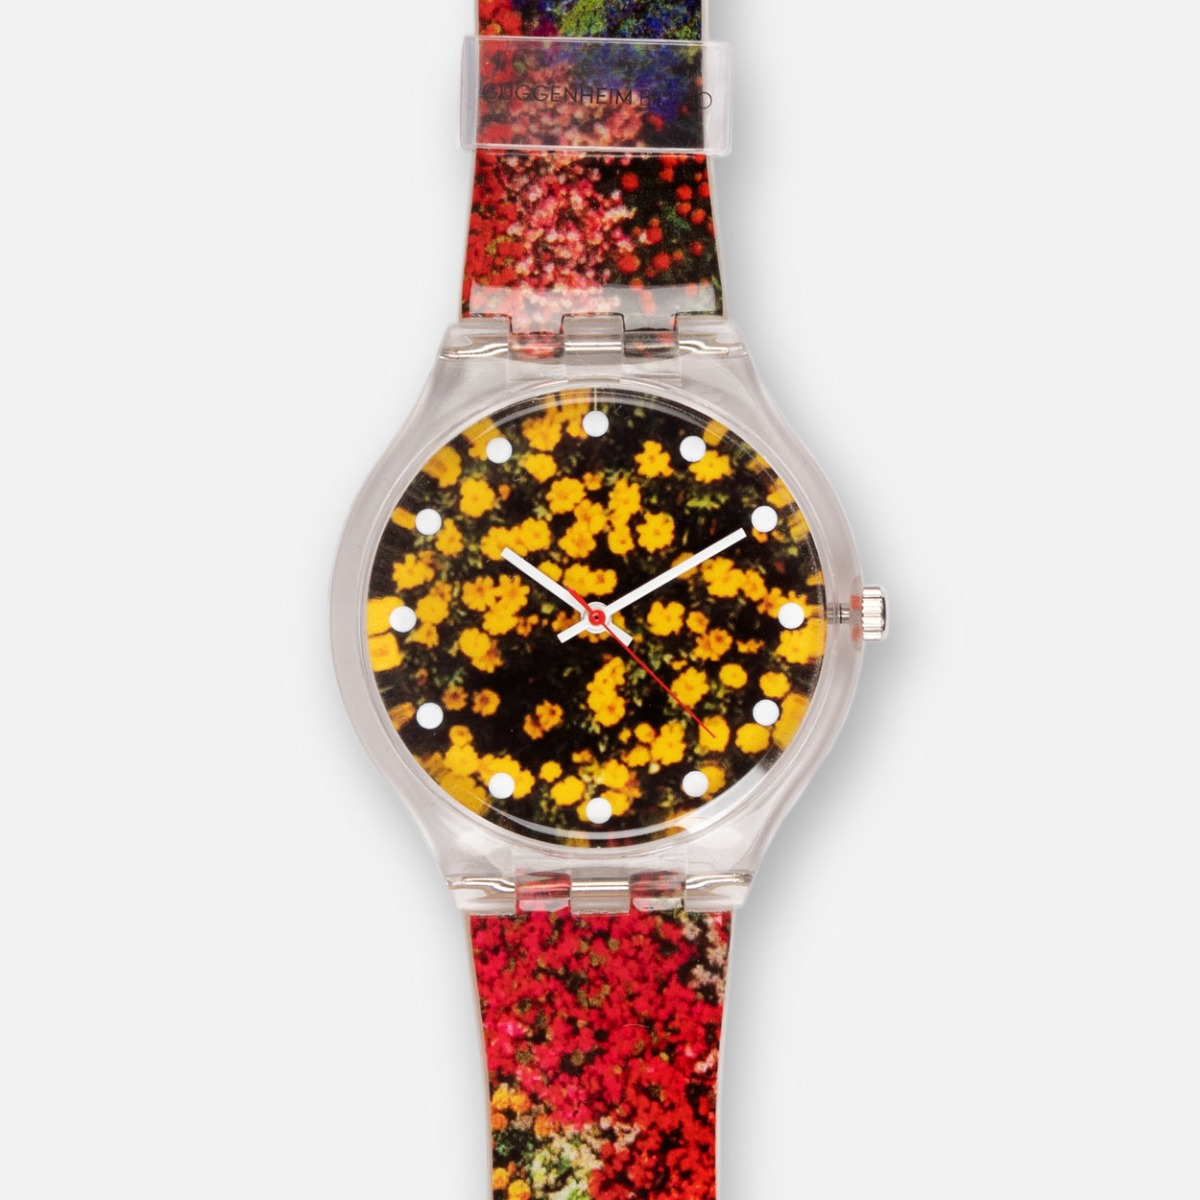 GUGGENHEIM BILBAO FLOWERS WATCH